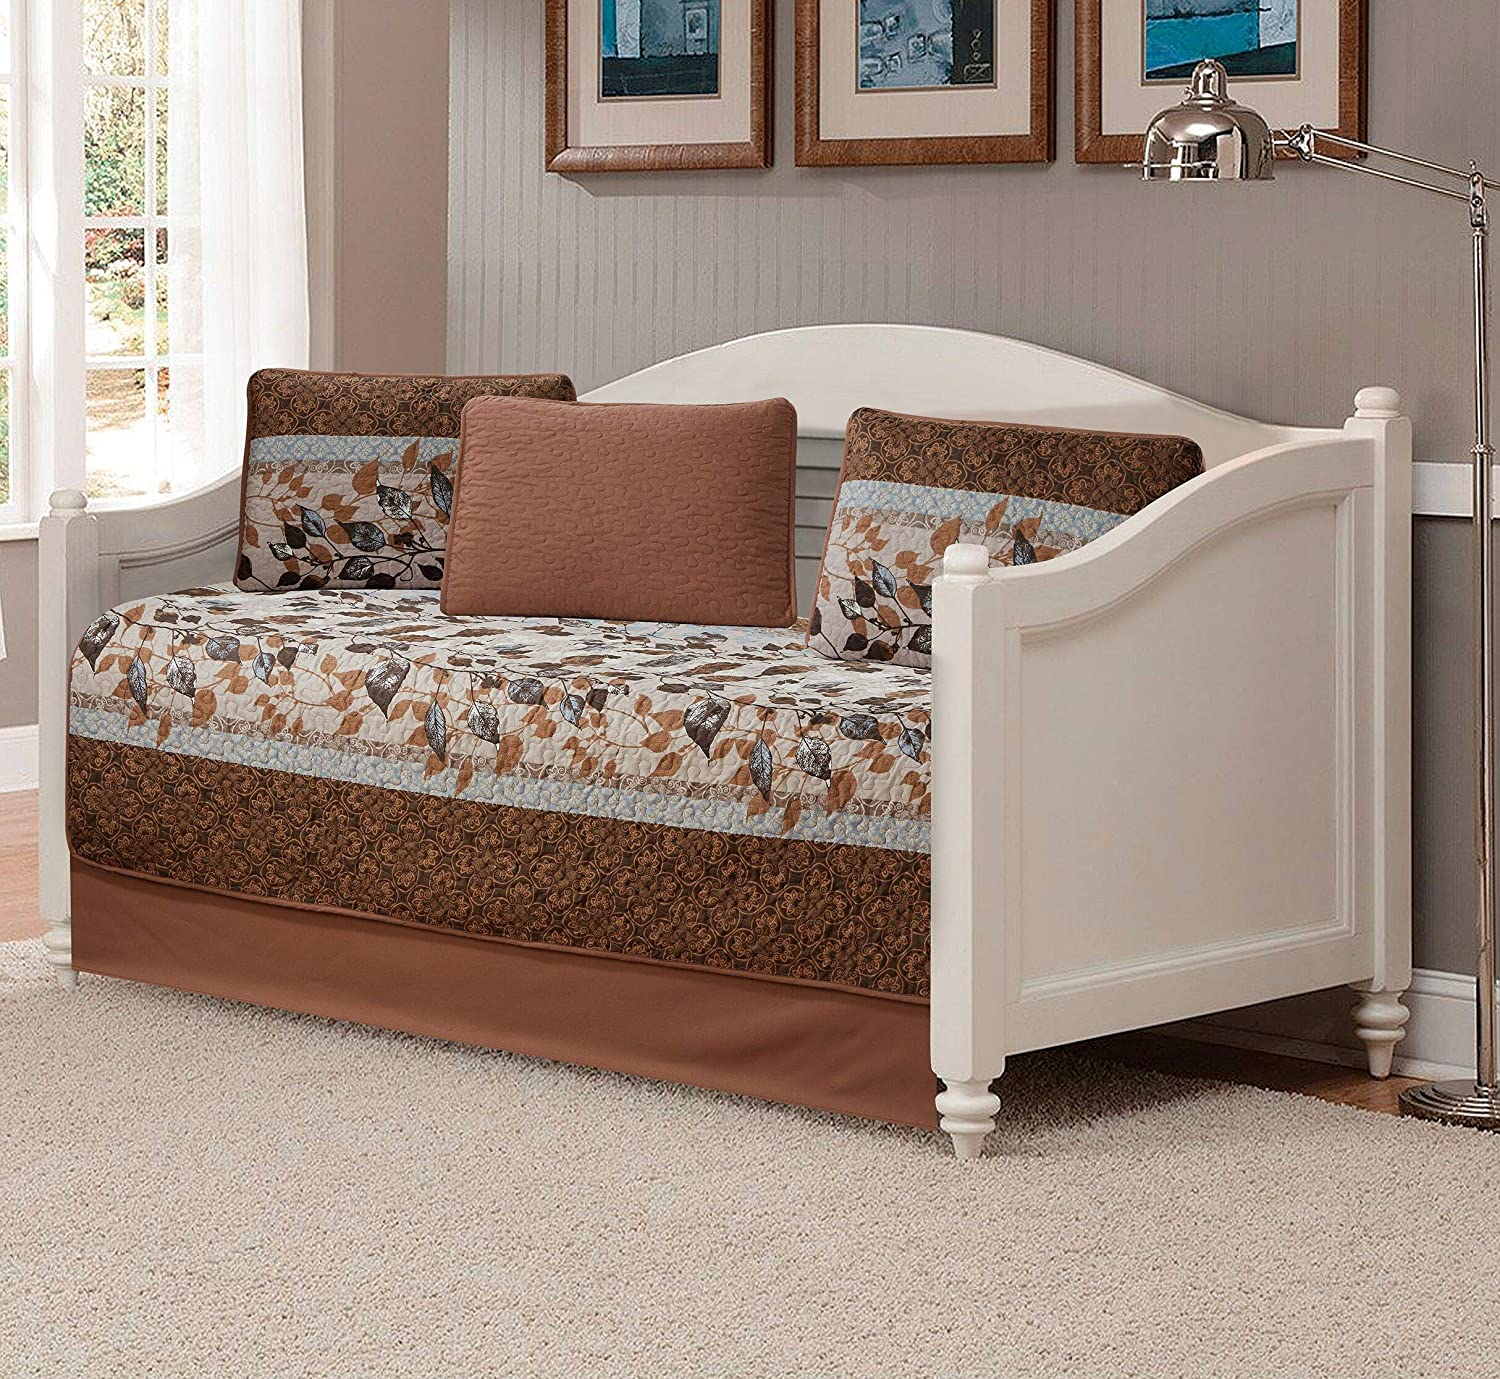 Better Home Style Max 86% OFF Brown Ranking TOP18 Taupe Beige Slate Rust and M Accent Blue